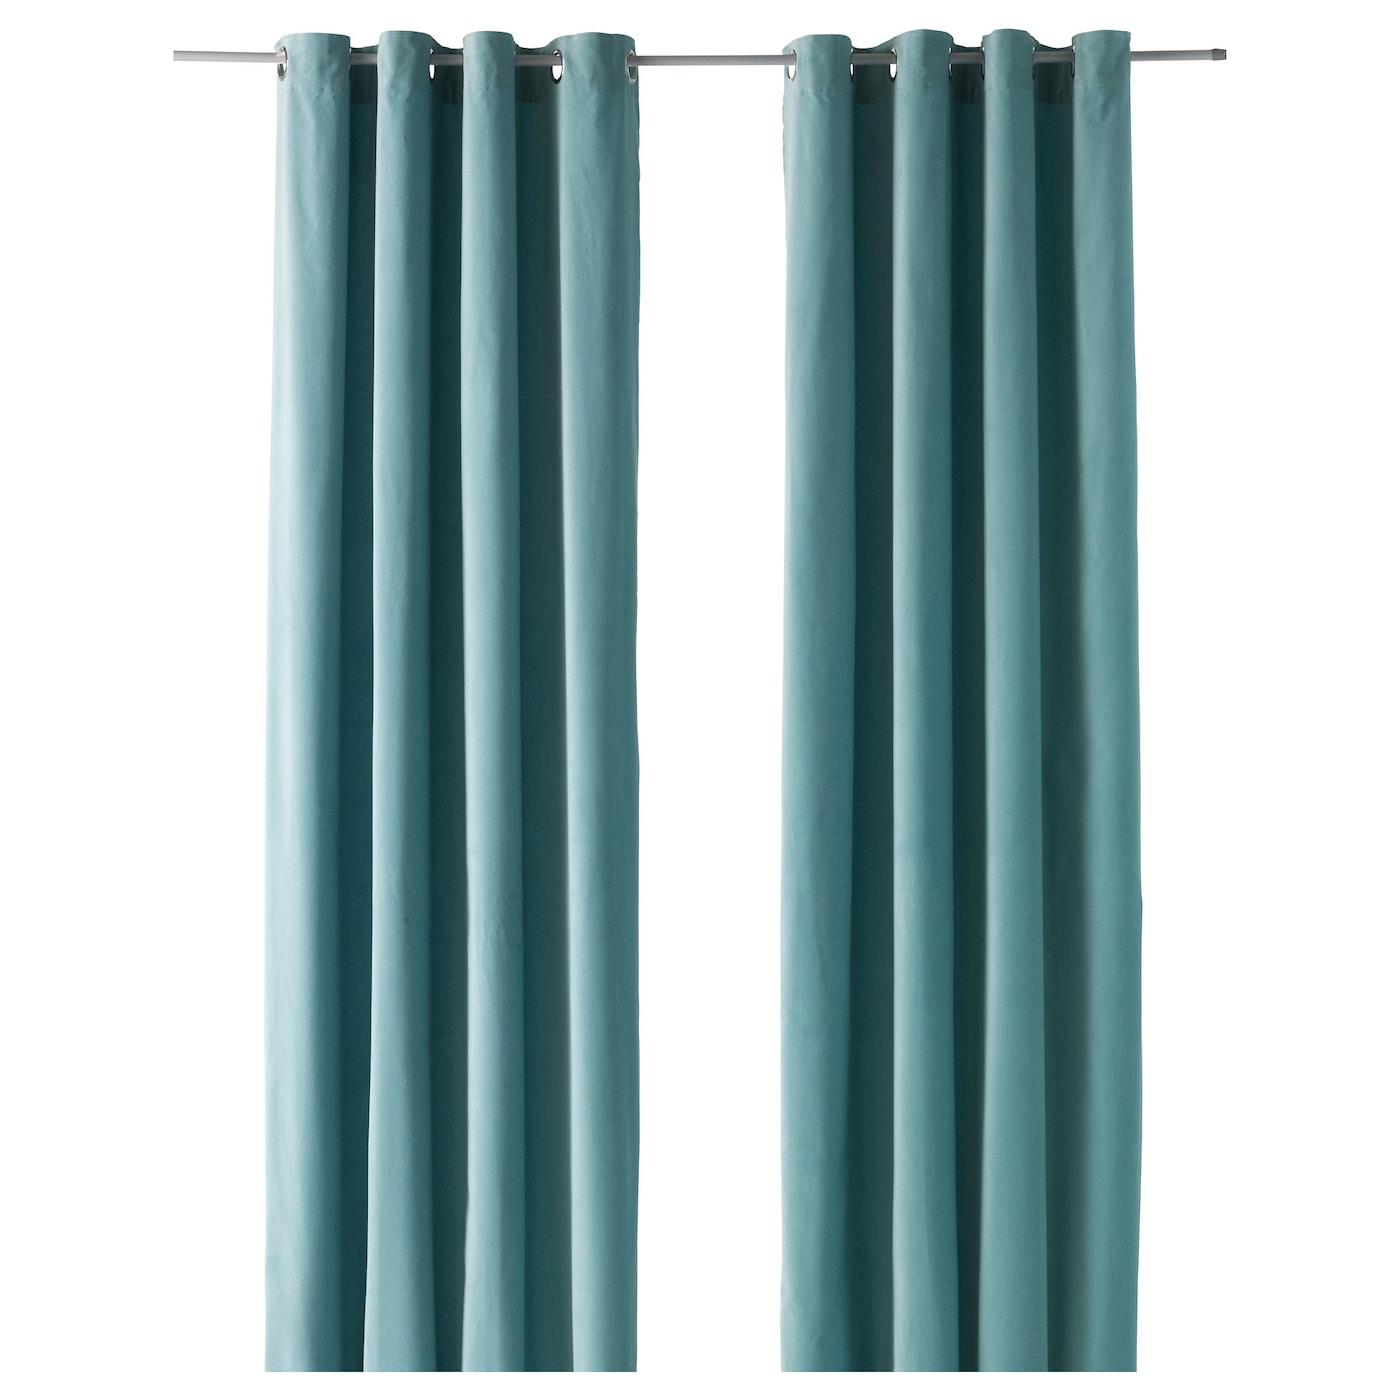 light blue curtains. ikea sanela curtains, 1 pair cotton velvet gives depth to the colour and softness light blue curtains